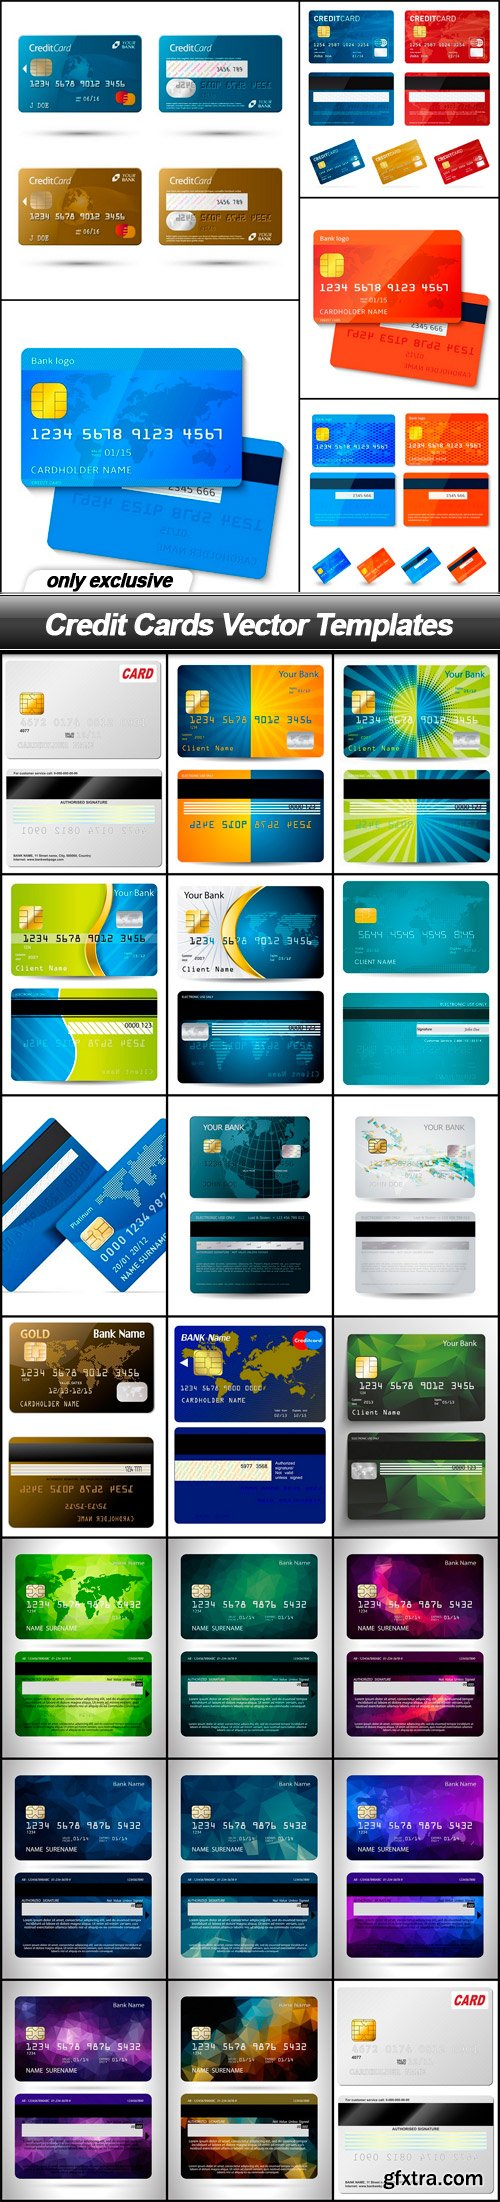 Credit Cards Vector Templates - 25 EPS